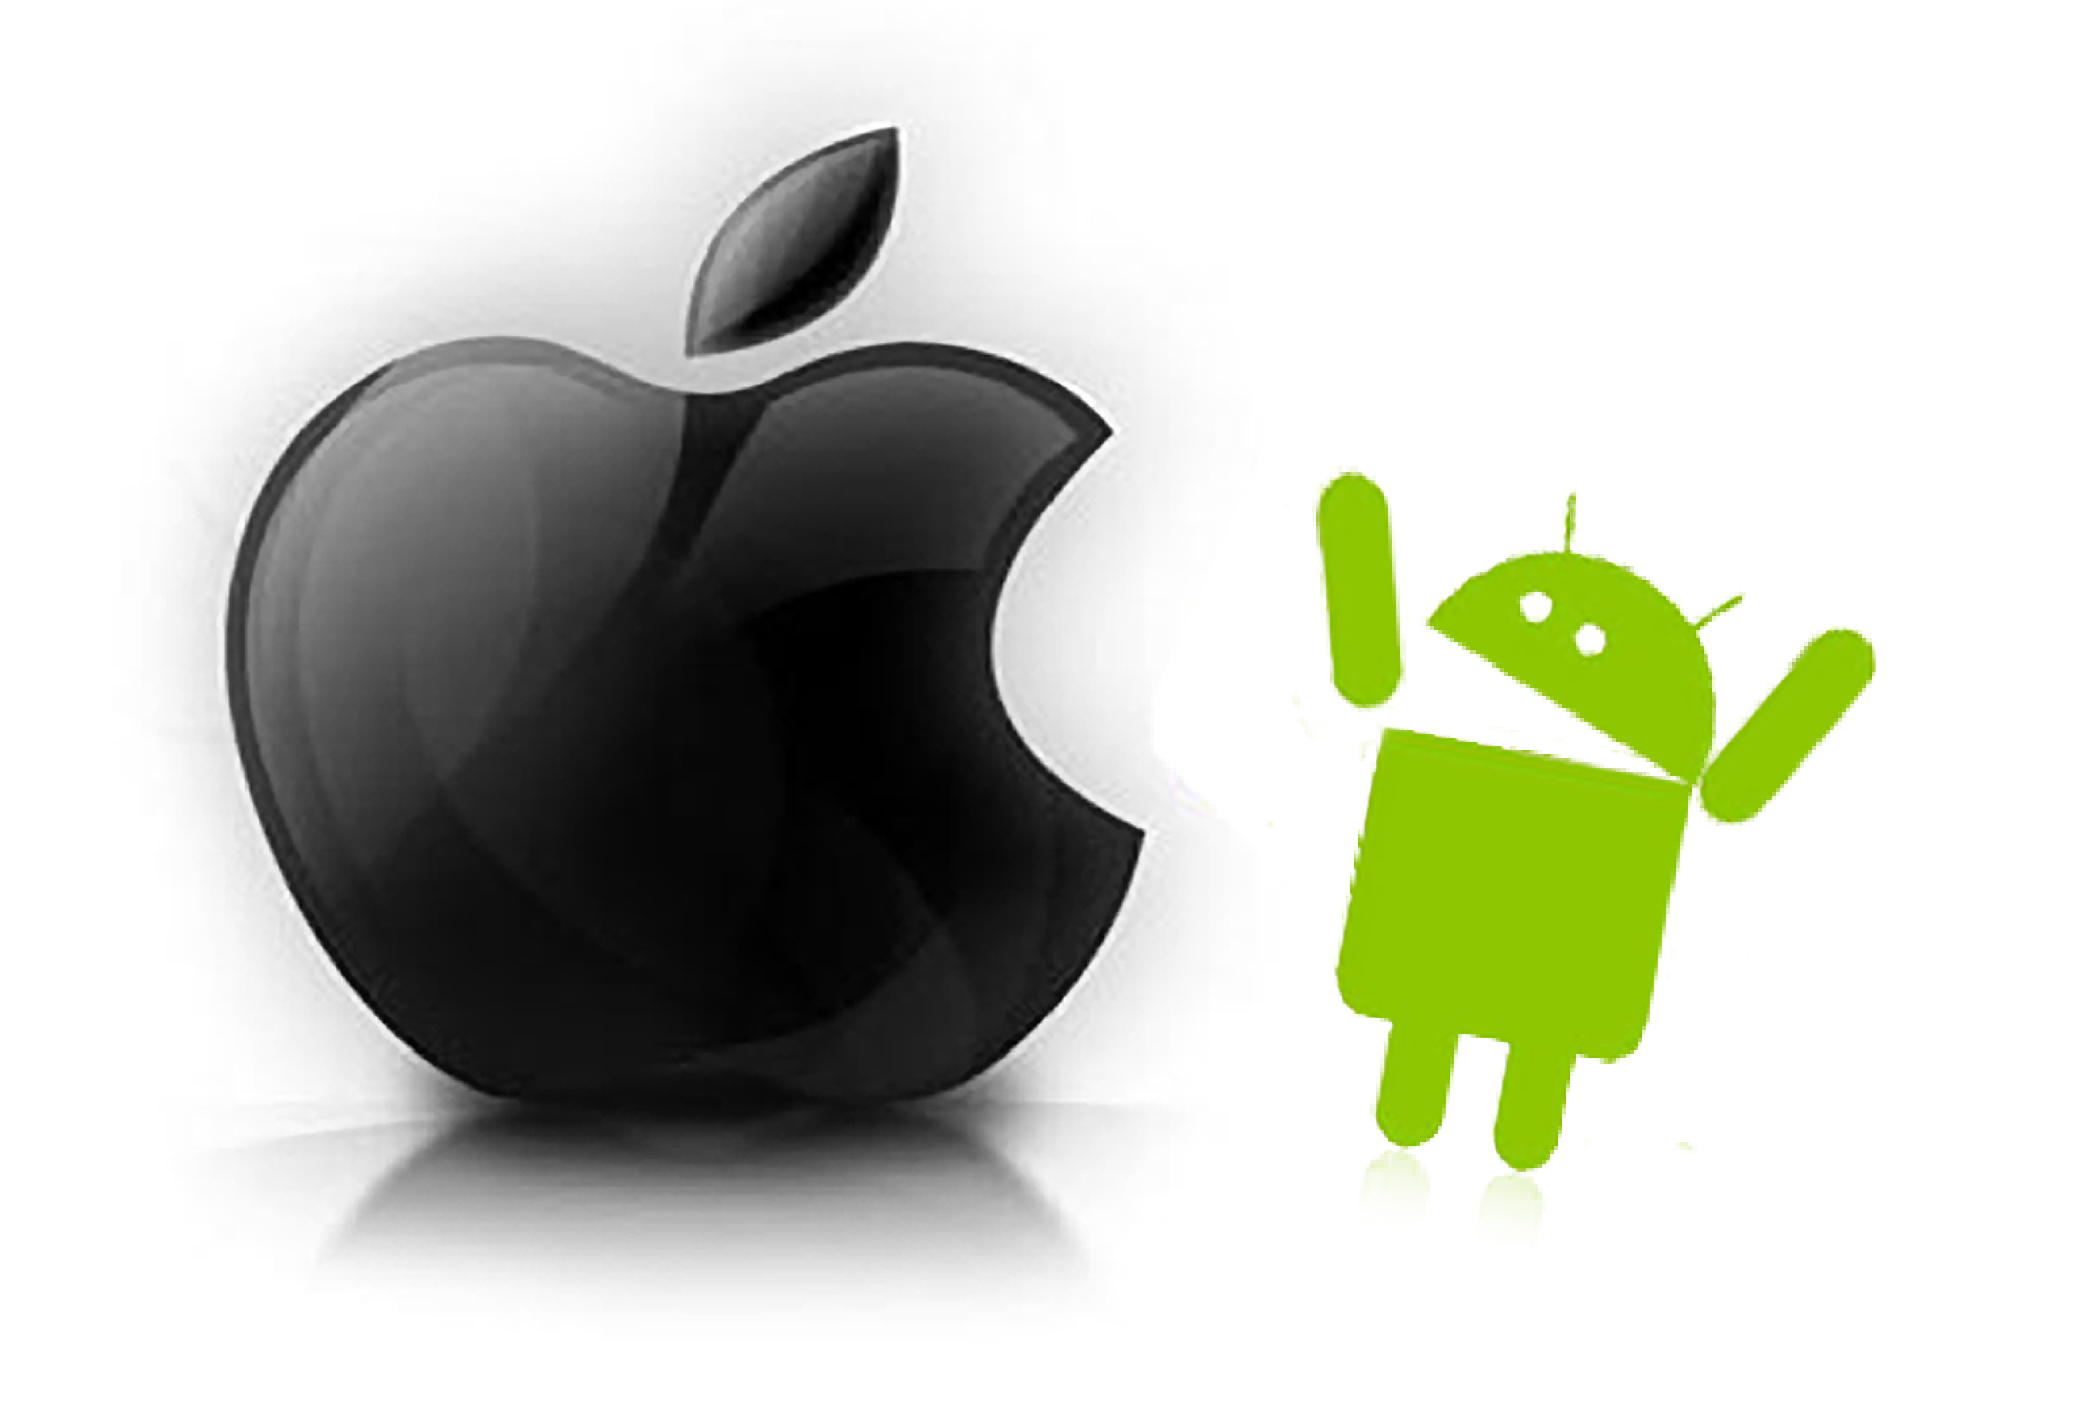 Is Apple Poised To Take Over Android's Market Share?